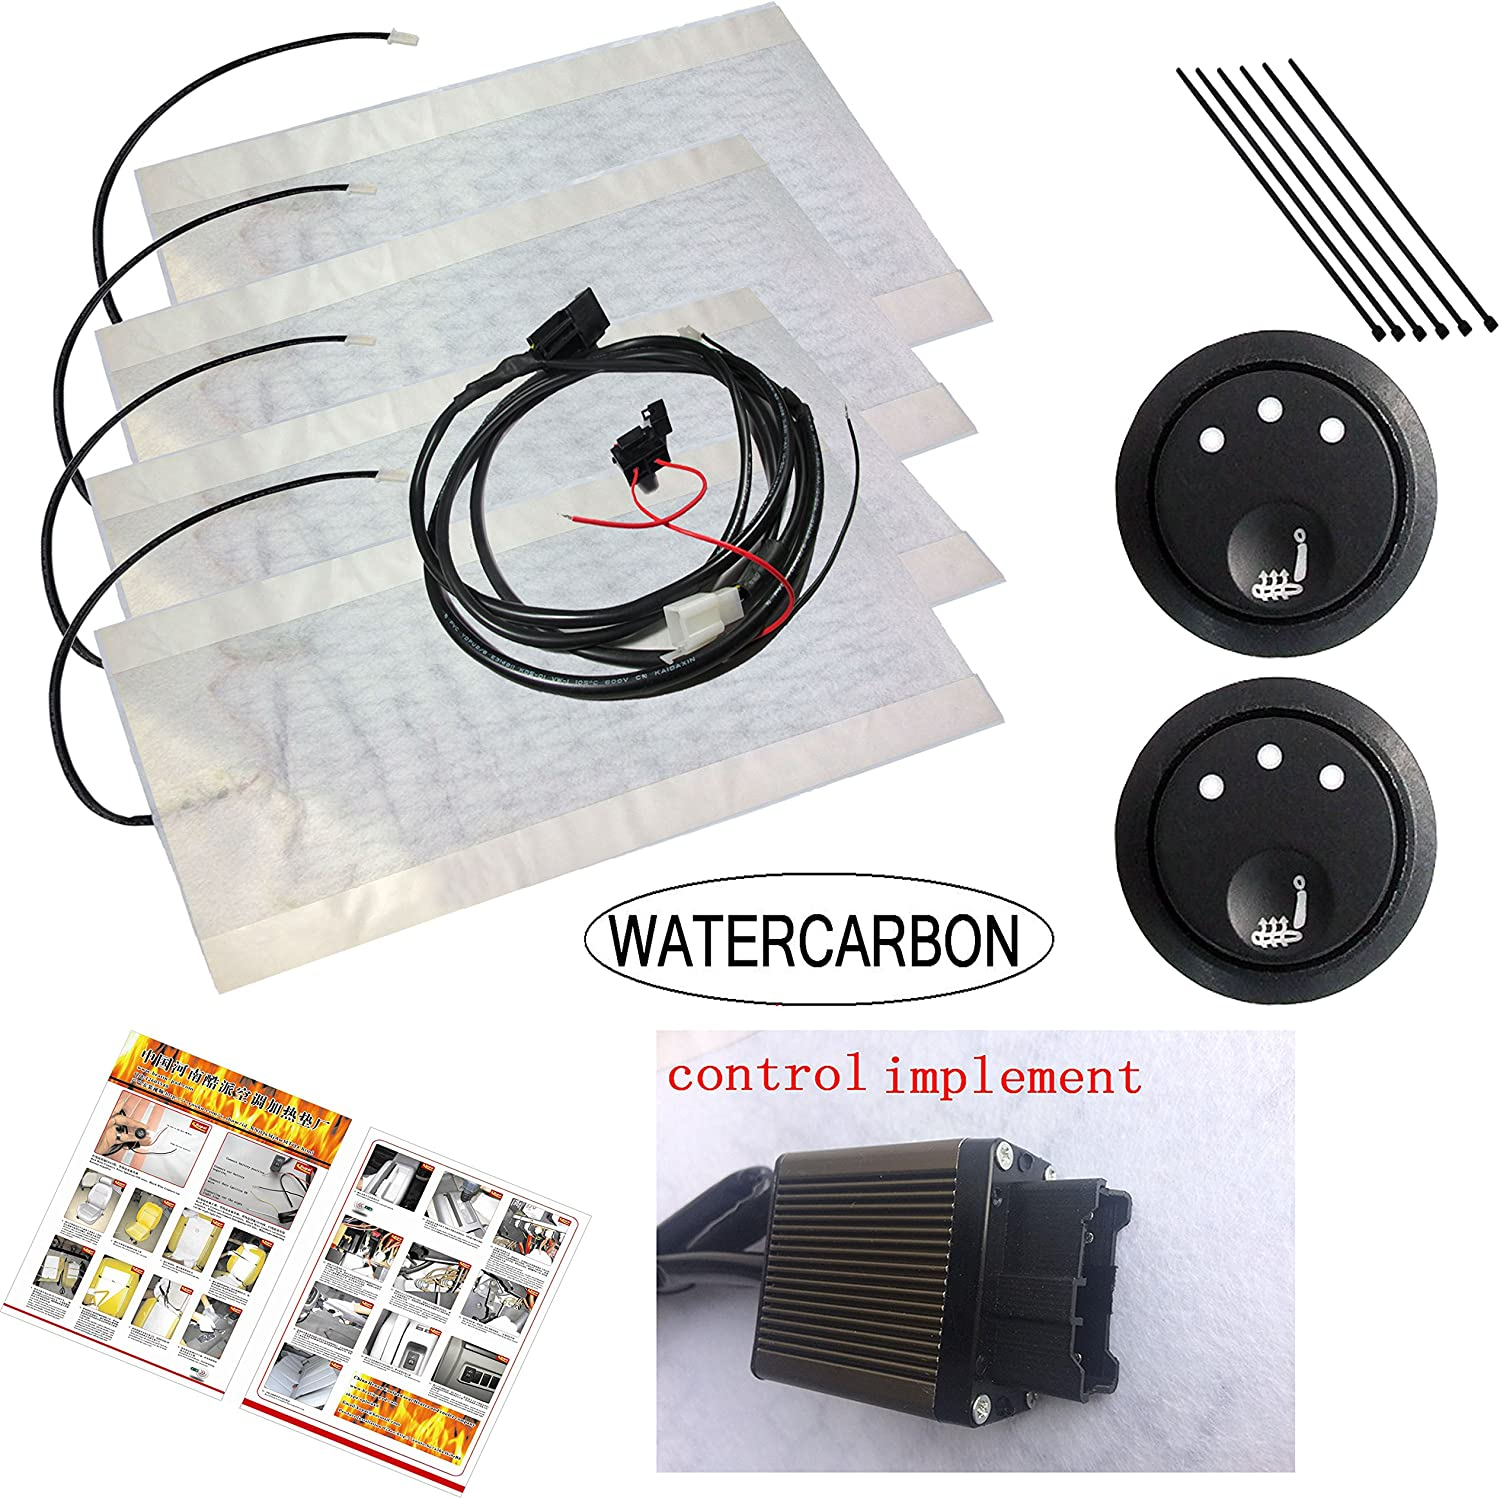 WATERCARBON Universal Car Seat Heater Kits 12v Carbon Fiber Heat Pads with Hi/Lo Temperature Switch 131~158 ℉(Set of 2) (3 White Point Round 3 Gear Heating Switch)